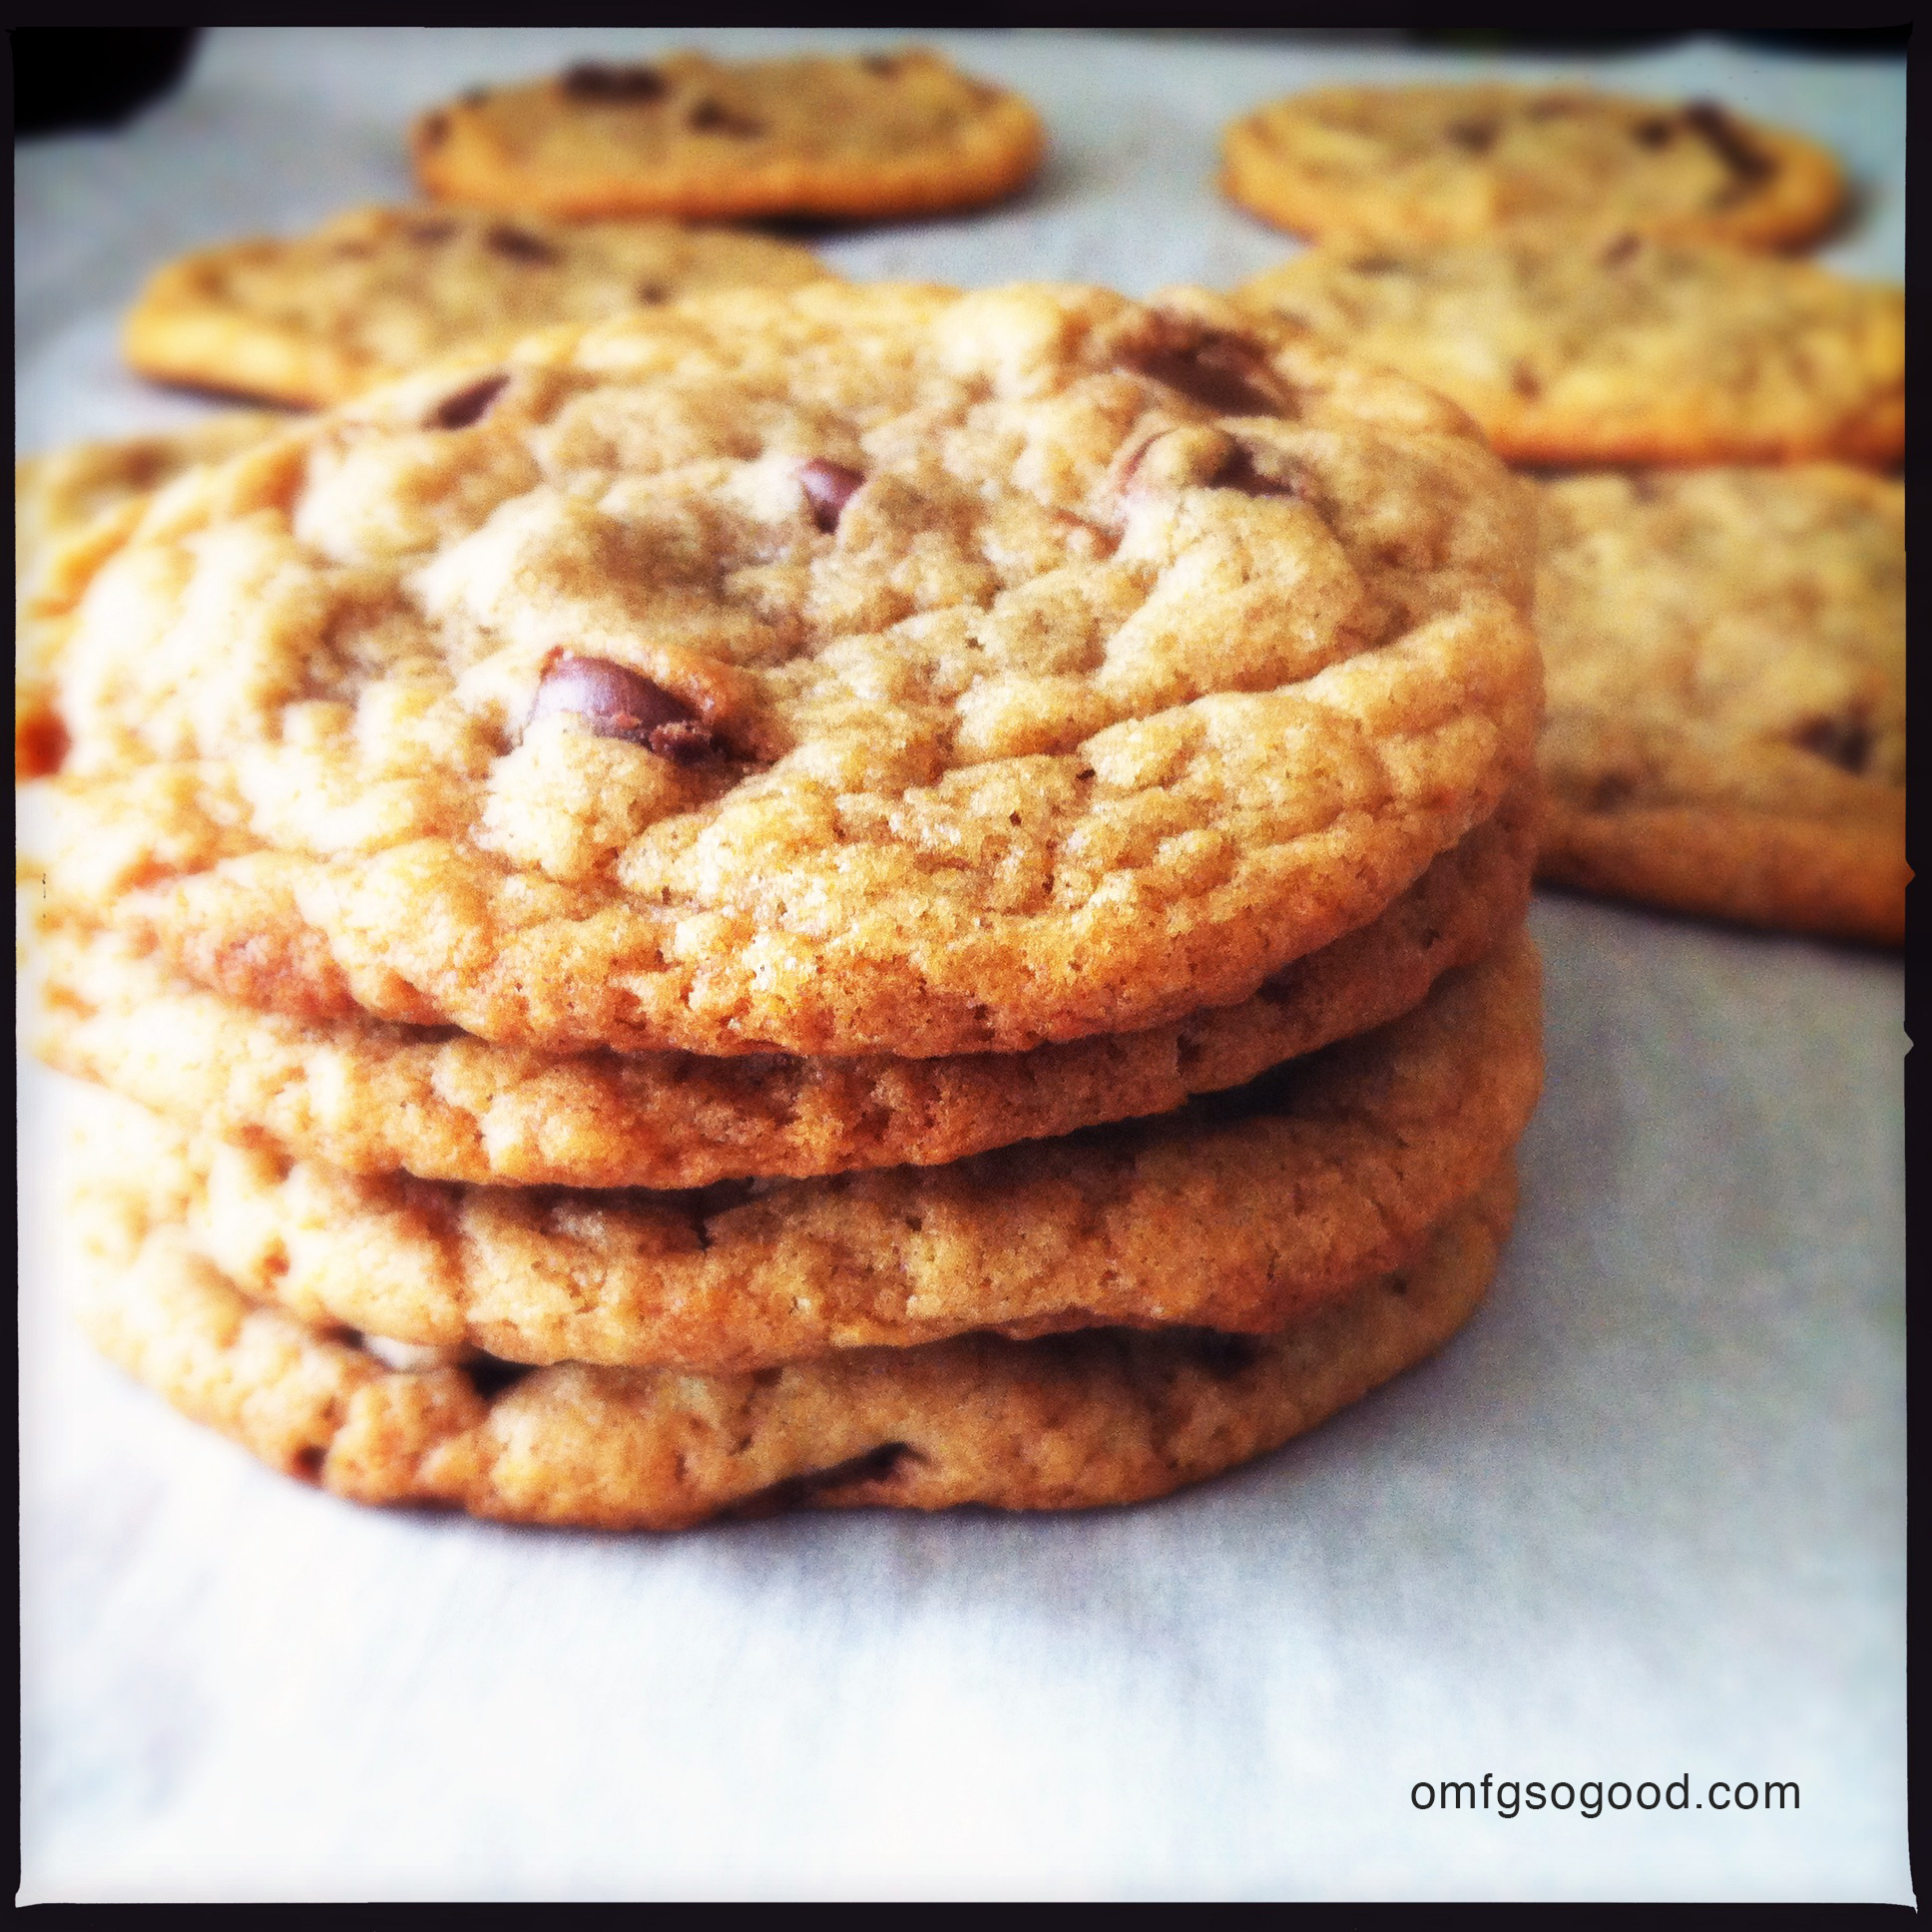 peanut butter banana chocolate chip cookies | omfg. so good.